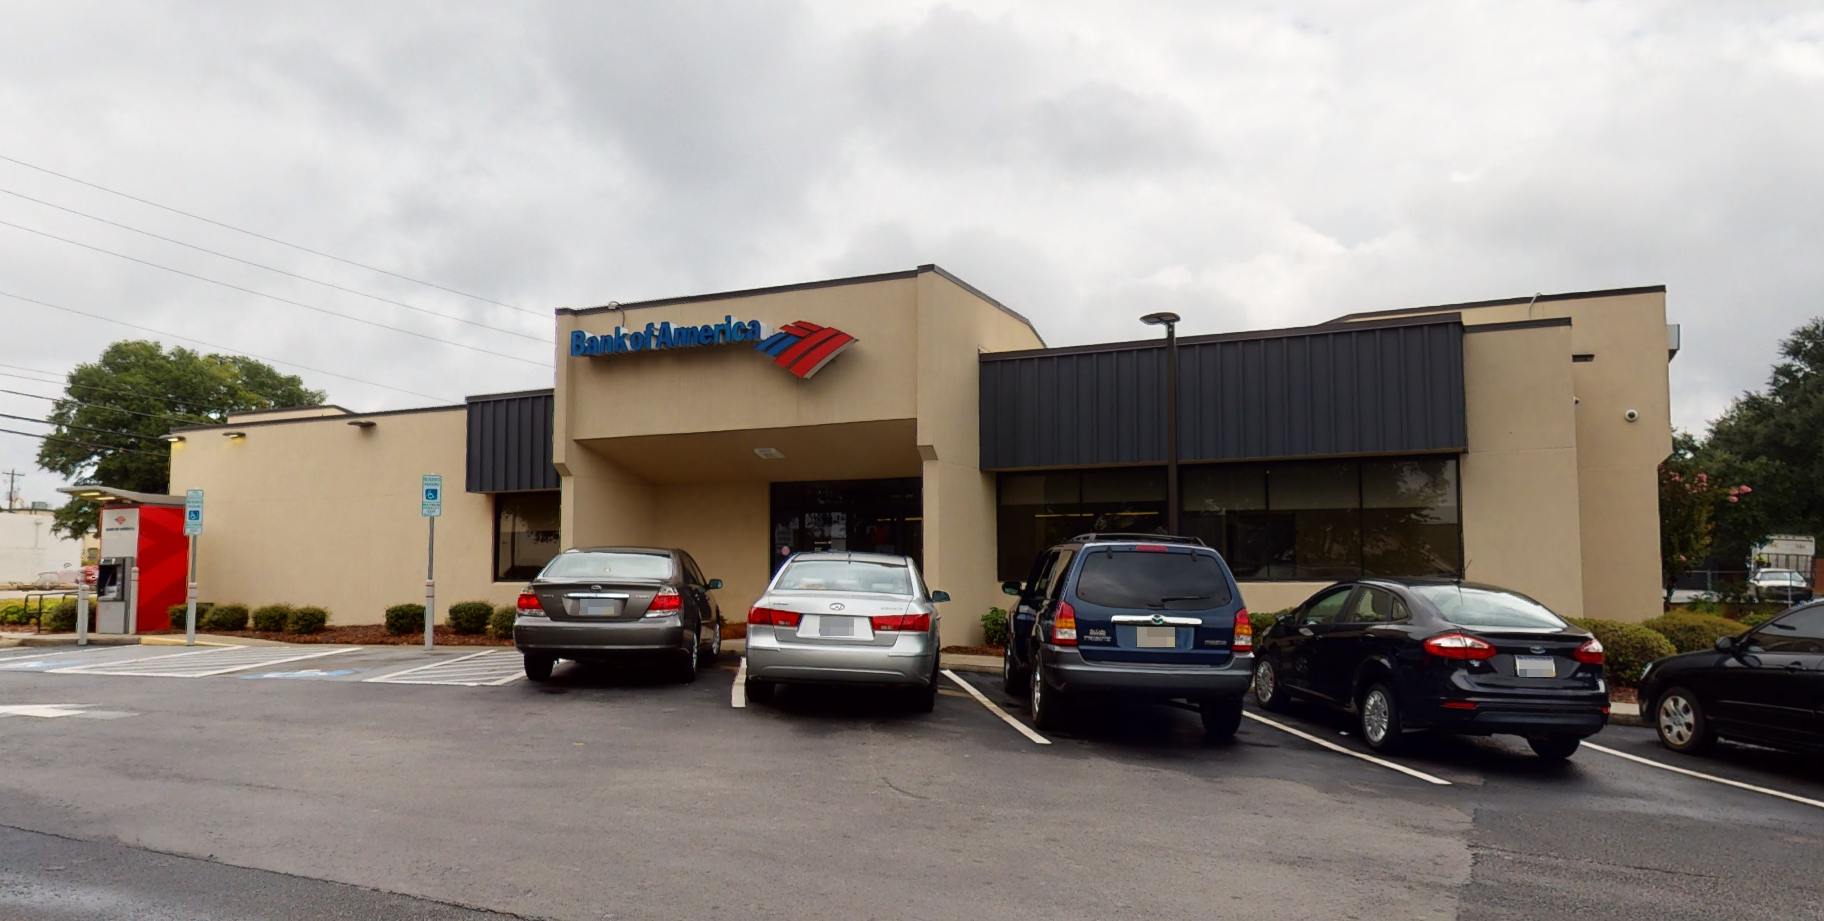 Bank of America financial center with drive-thru ATM and teller   330 Bush River Rd, Columbia, SC 29210